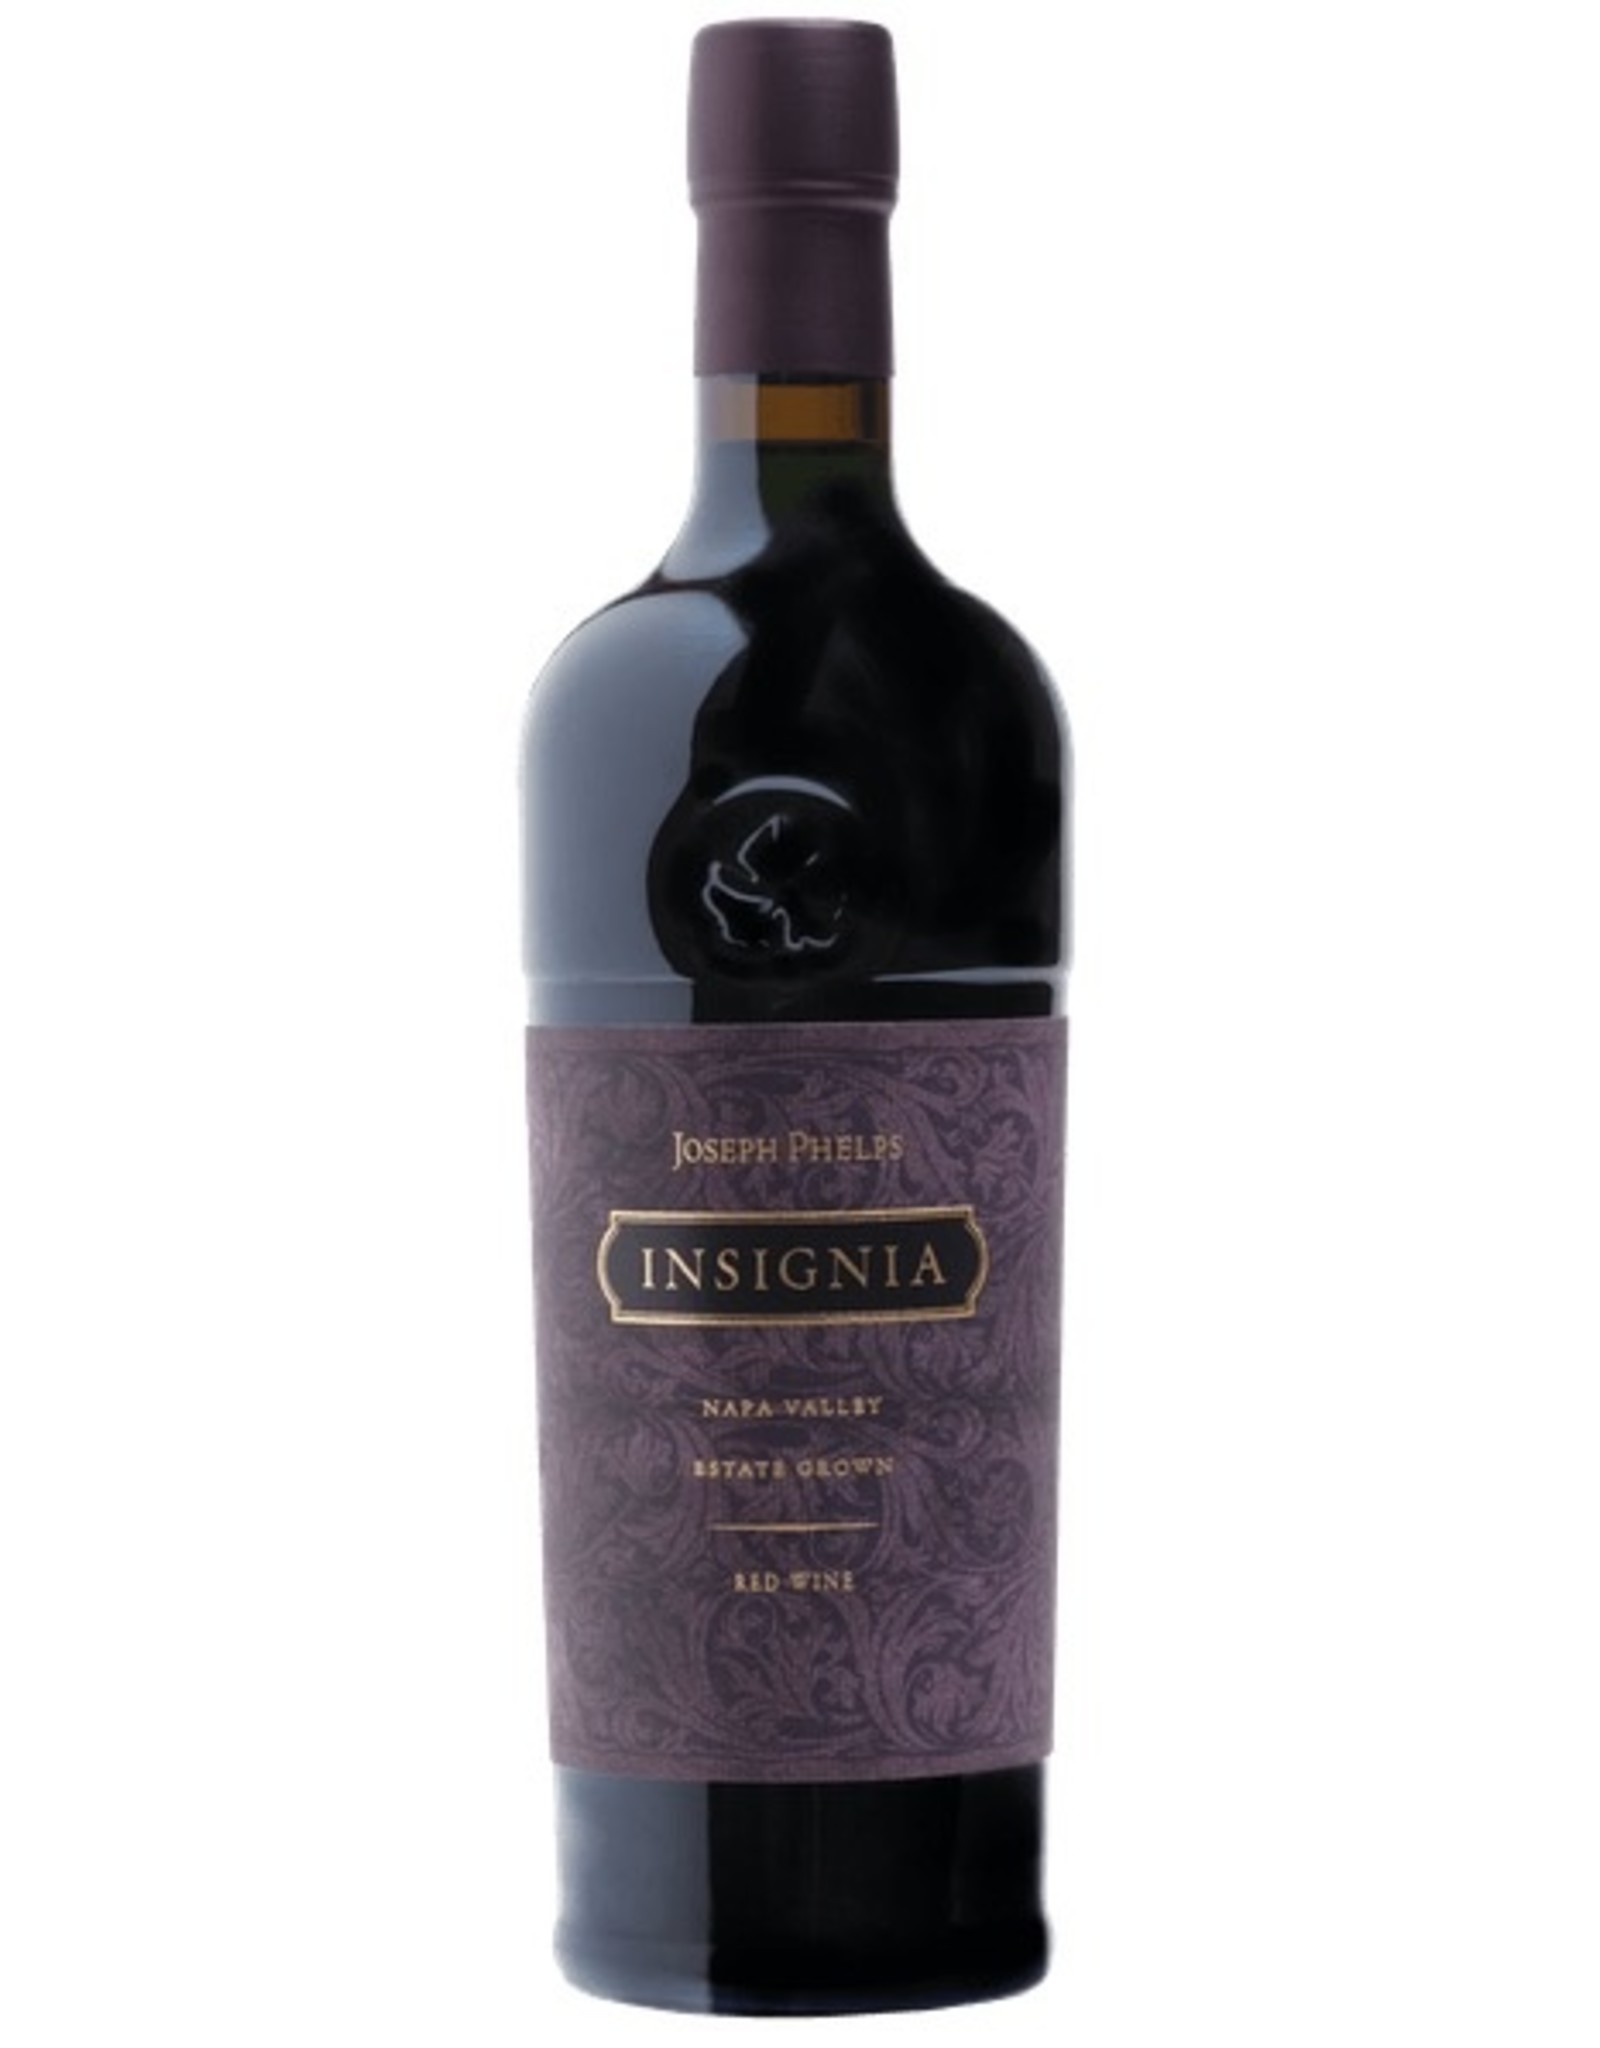 Red Wine 2015, Joseph Phelps Insignia, Red Blend, Stags Leap Distrcit, Napa Valley, California,14.5% Alc, CT95.7 RP100